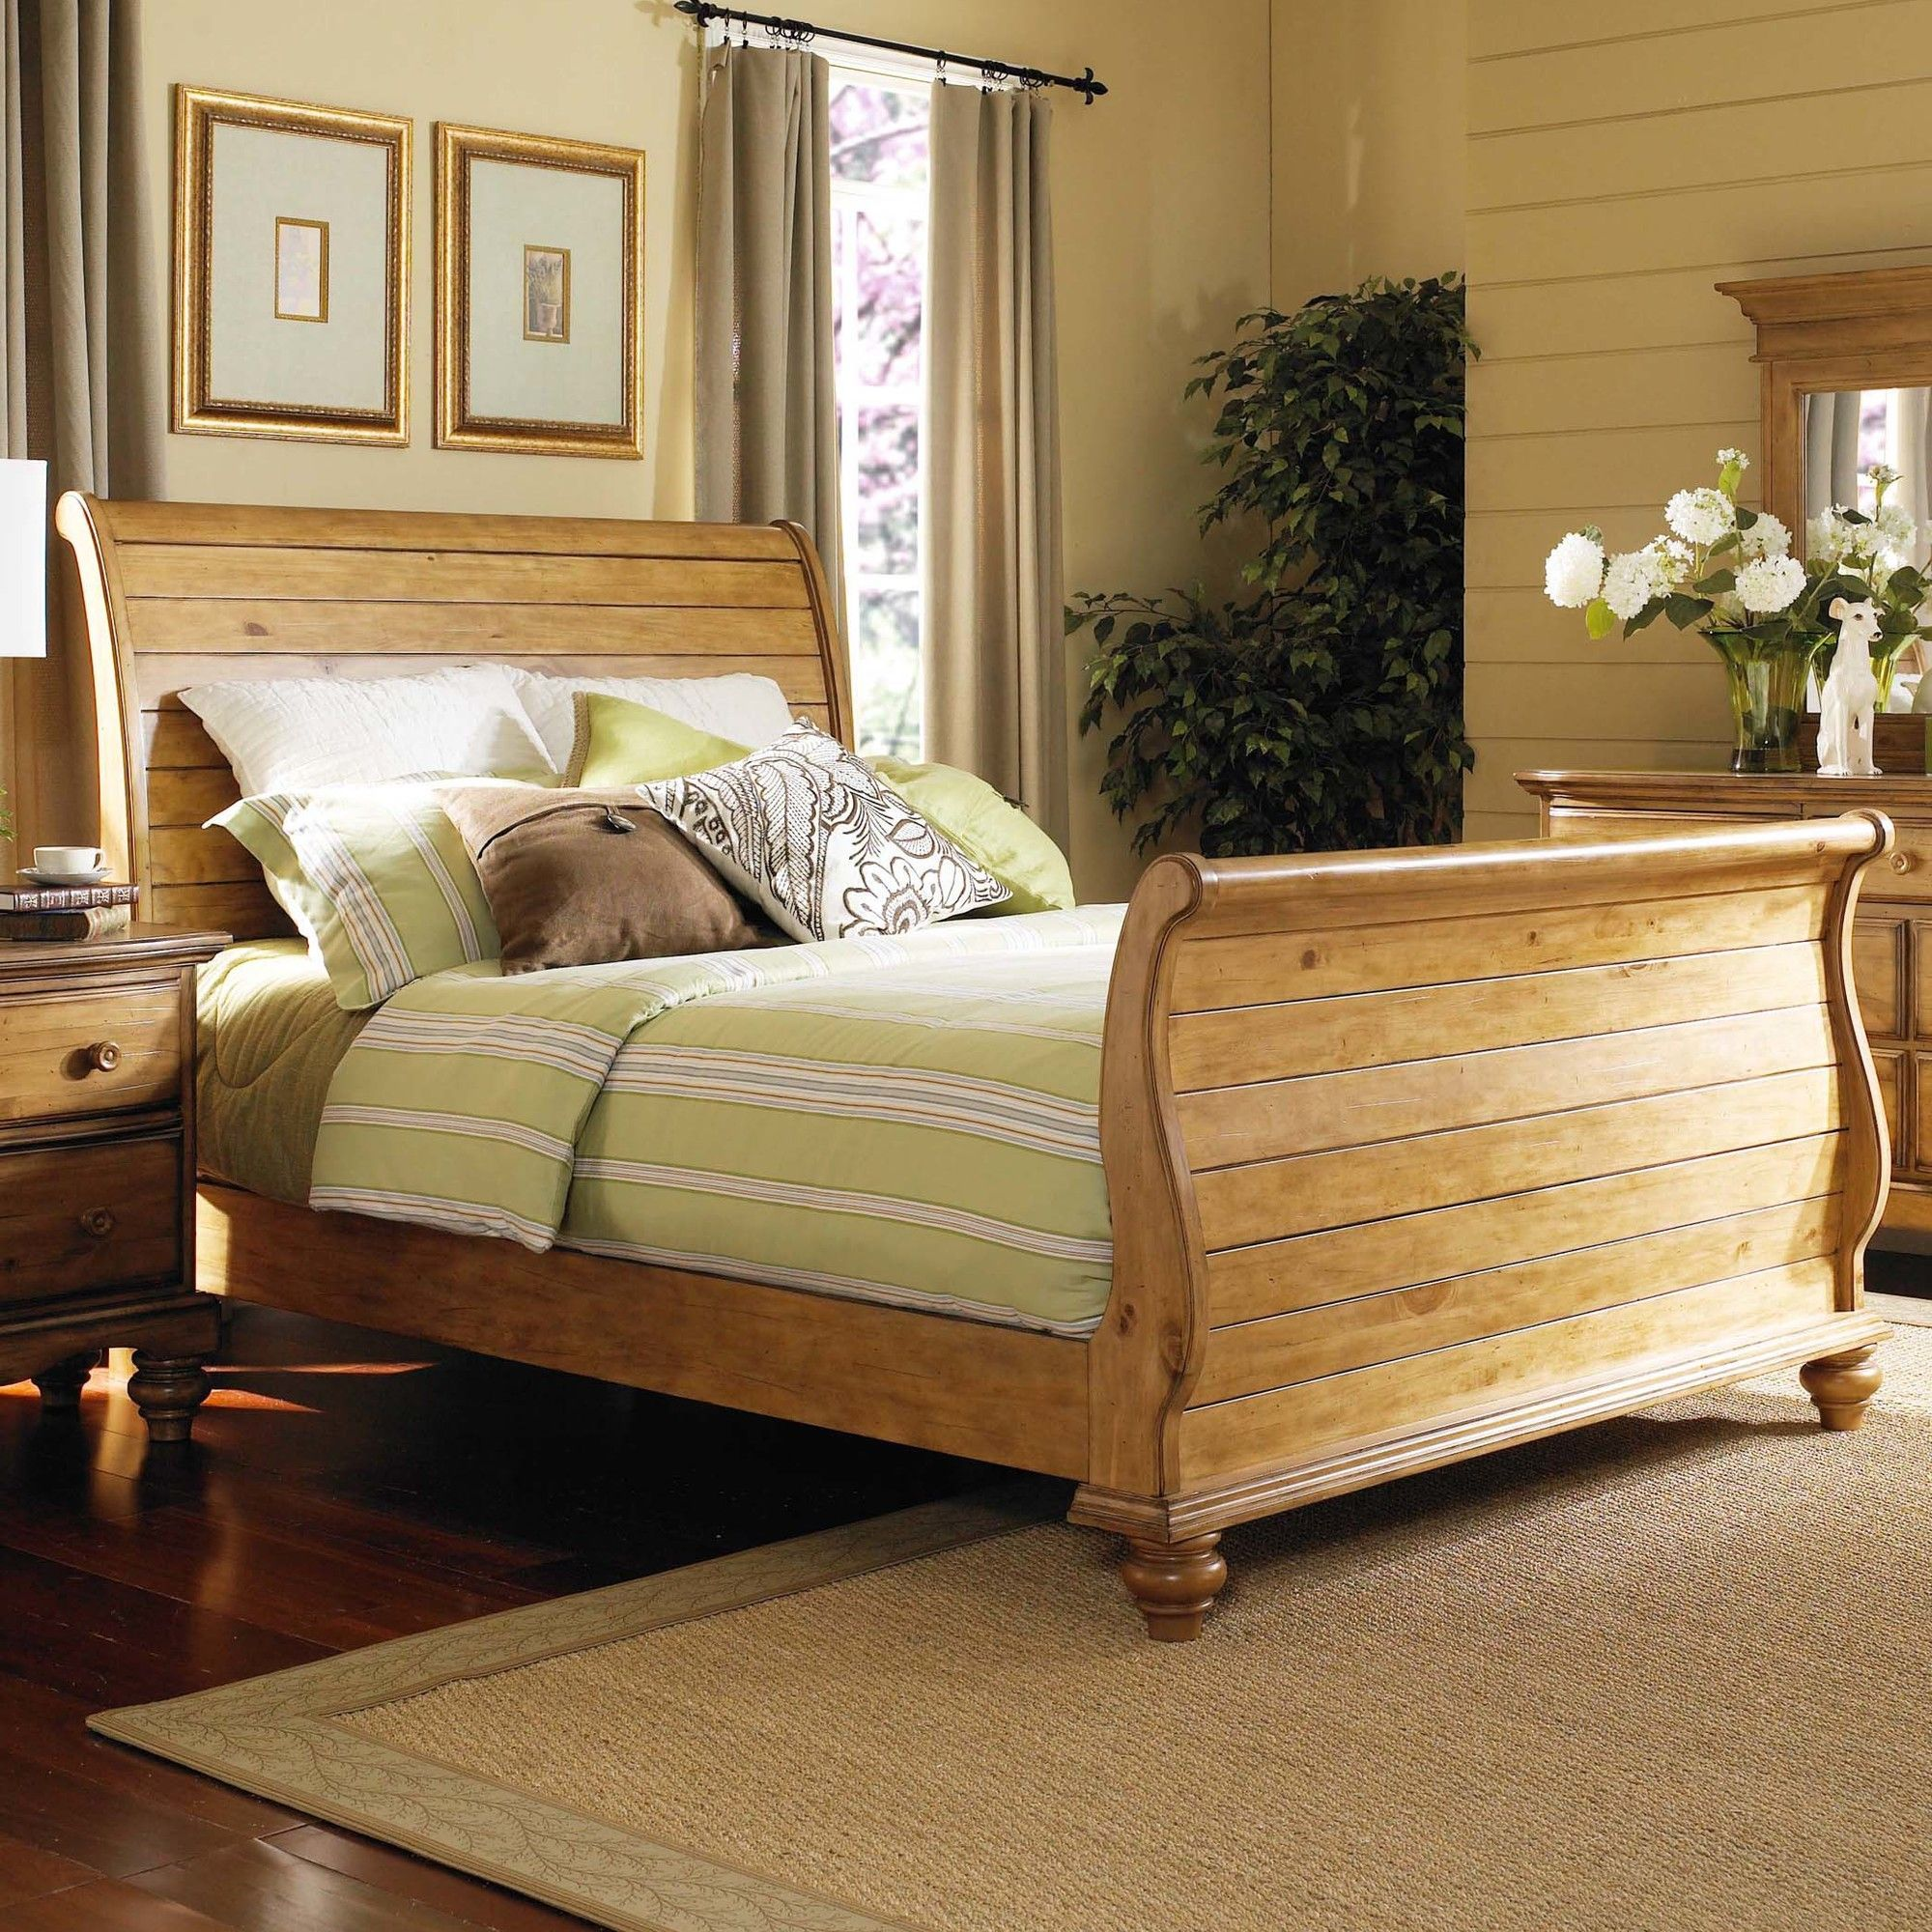 Online Home Store for Furniture, Decor, Outdoors & More  Wayfair